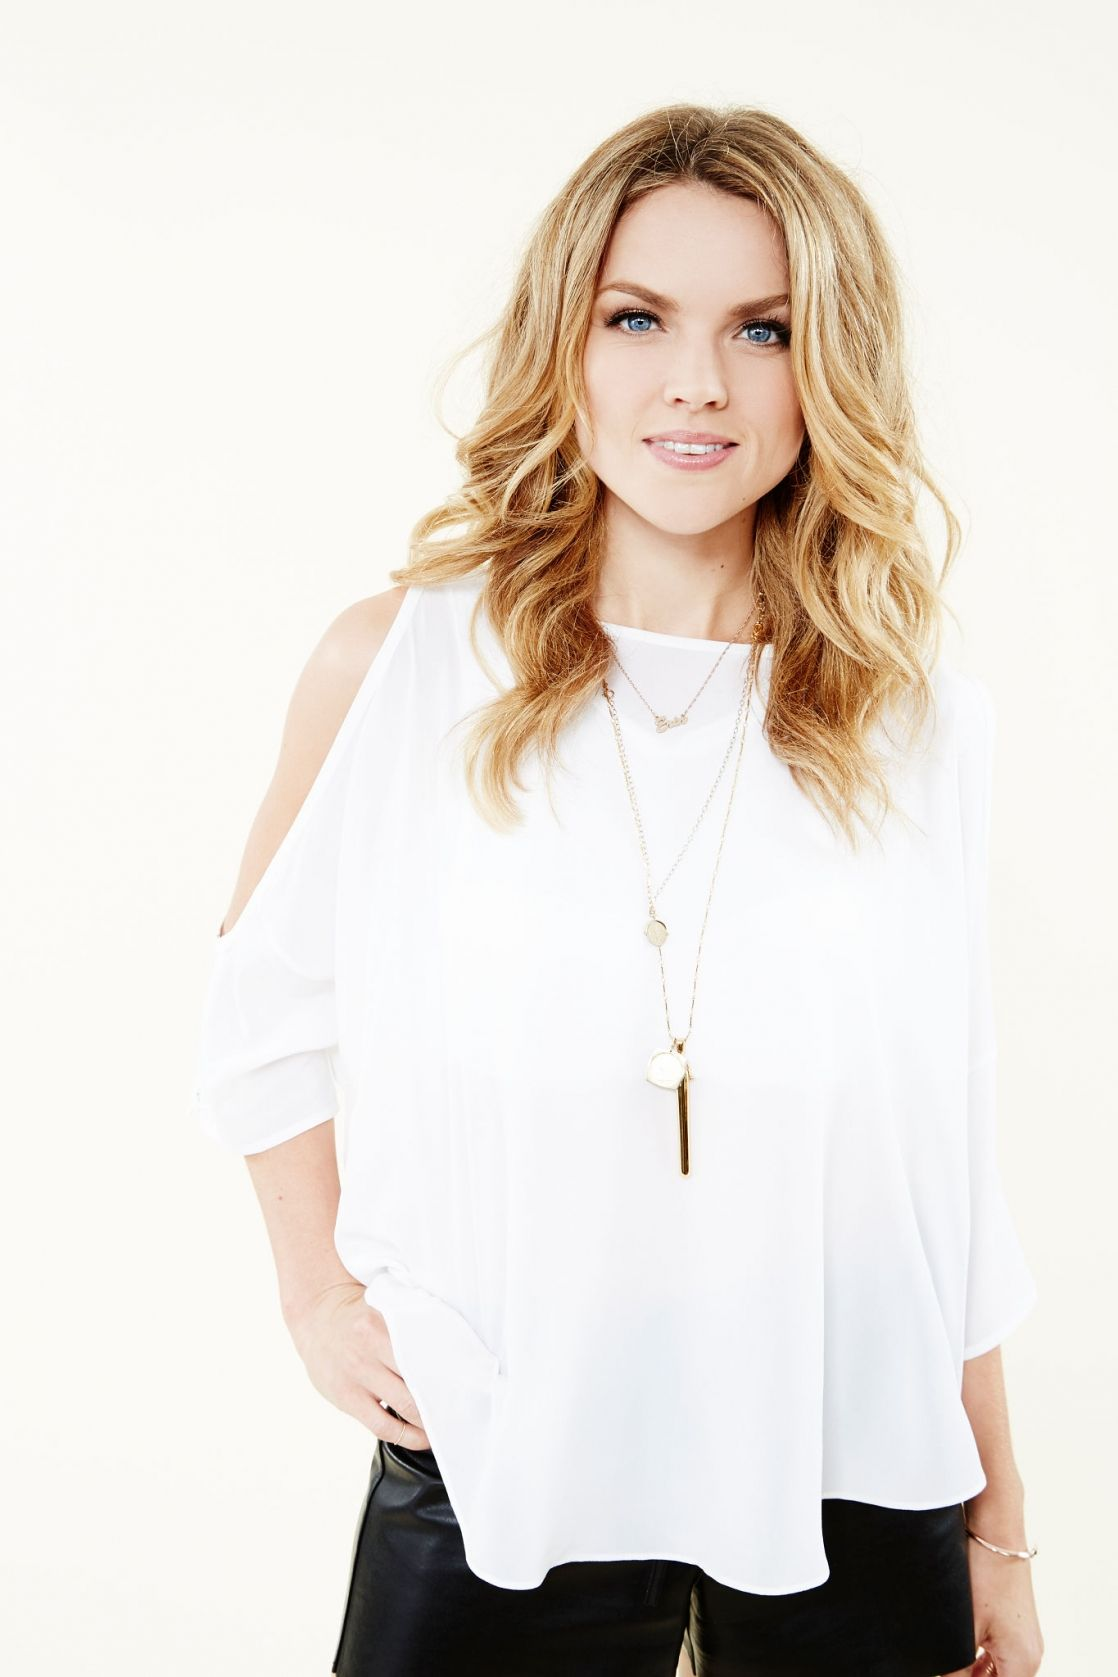 erin richards instagramerin richards vk, erin richards misfits, erin richards hd, erin richards facebook, erin richards photo, erin richards gallery, erin richards 2016, erin richards hd wallpapers, erin richards twitter, erin richards site, erin richards instagram, erin richards gif, erin richards gotham, erin richards hot gotham, erin richards interview, erin richards website